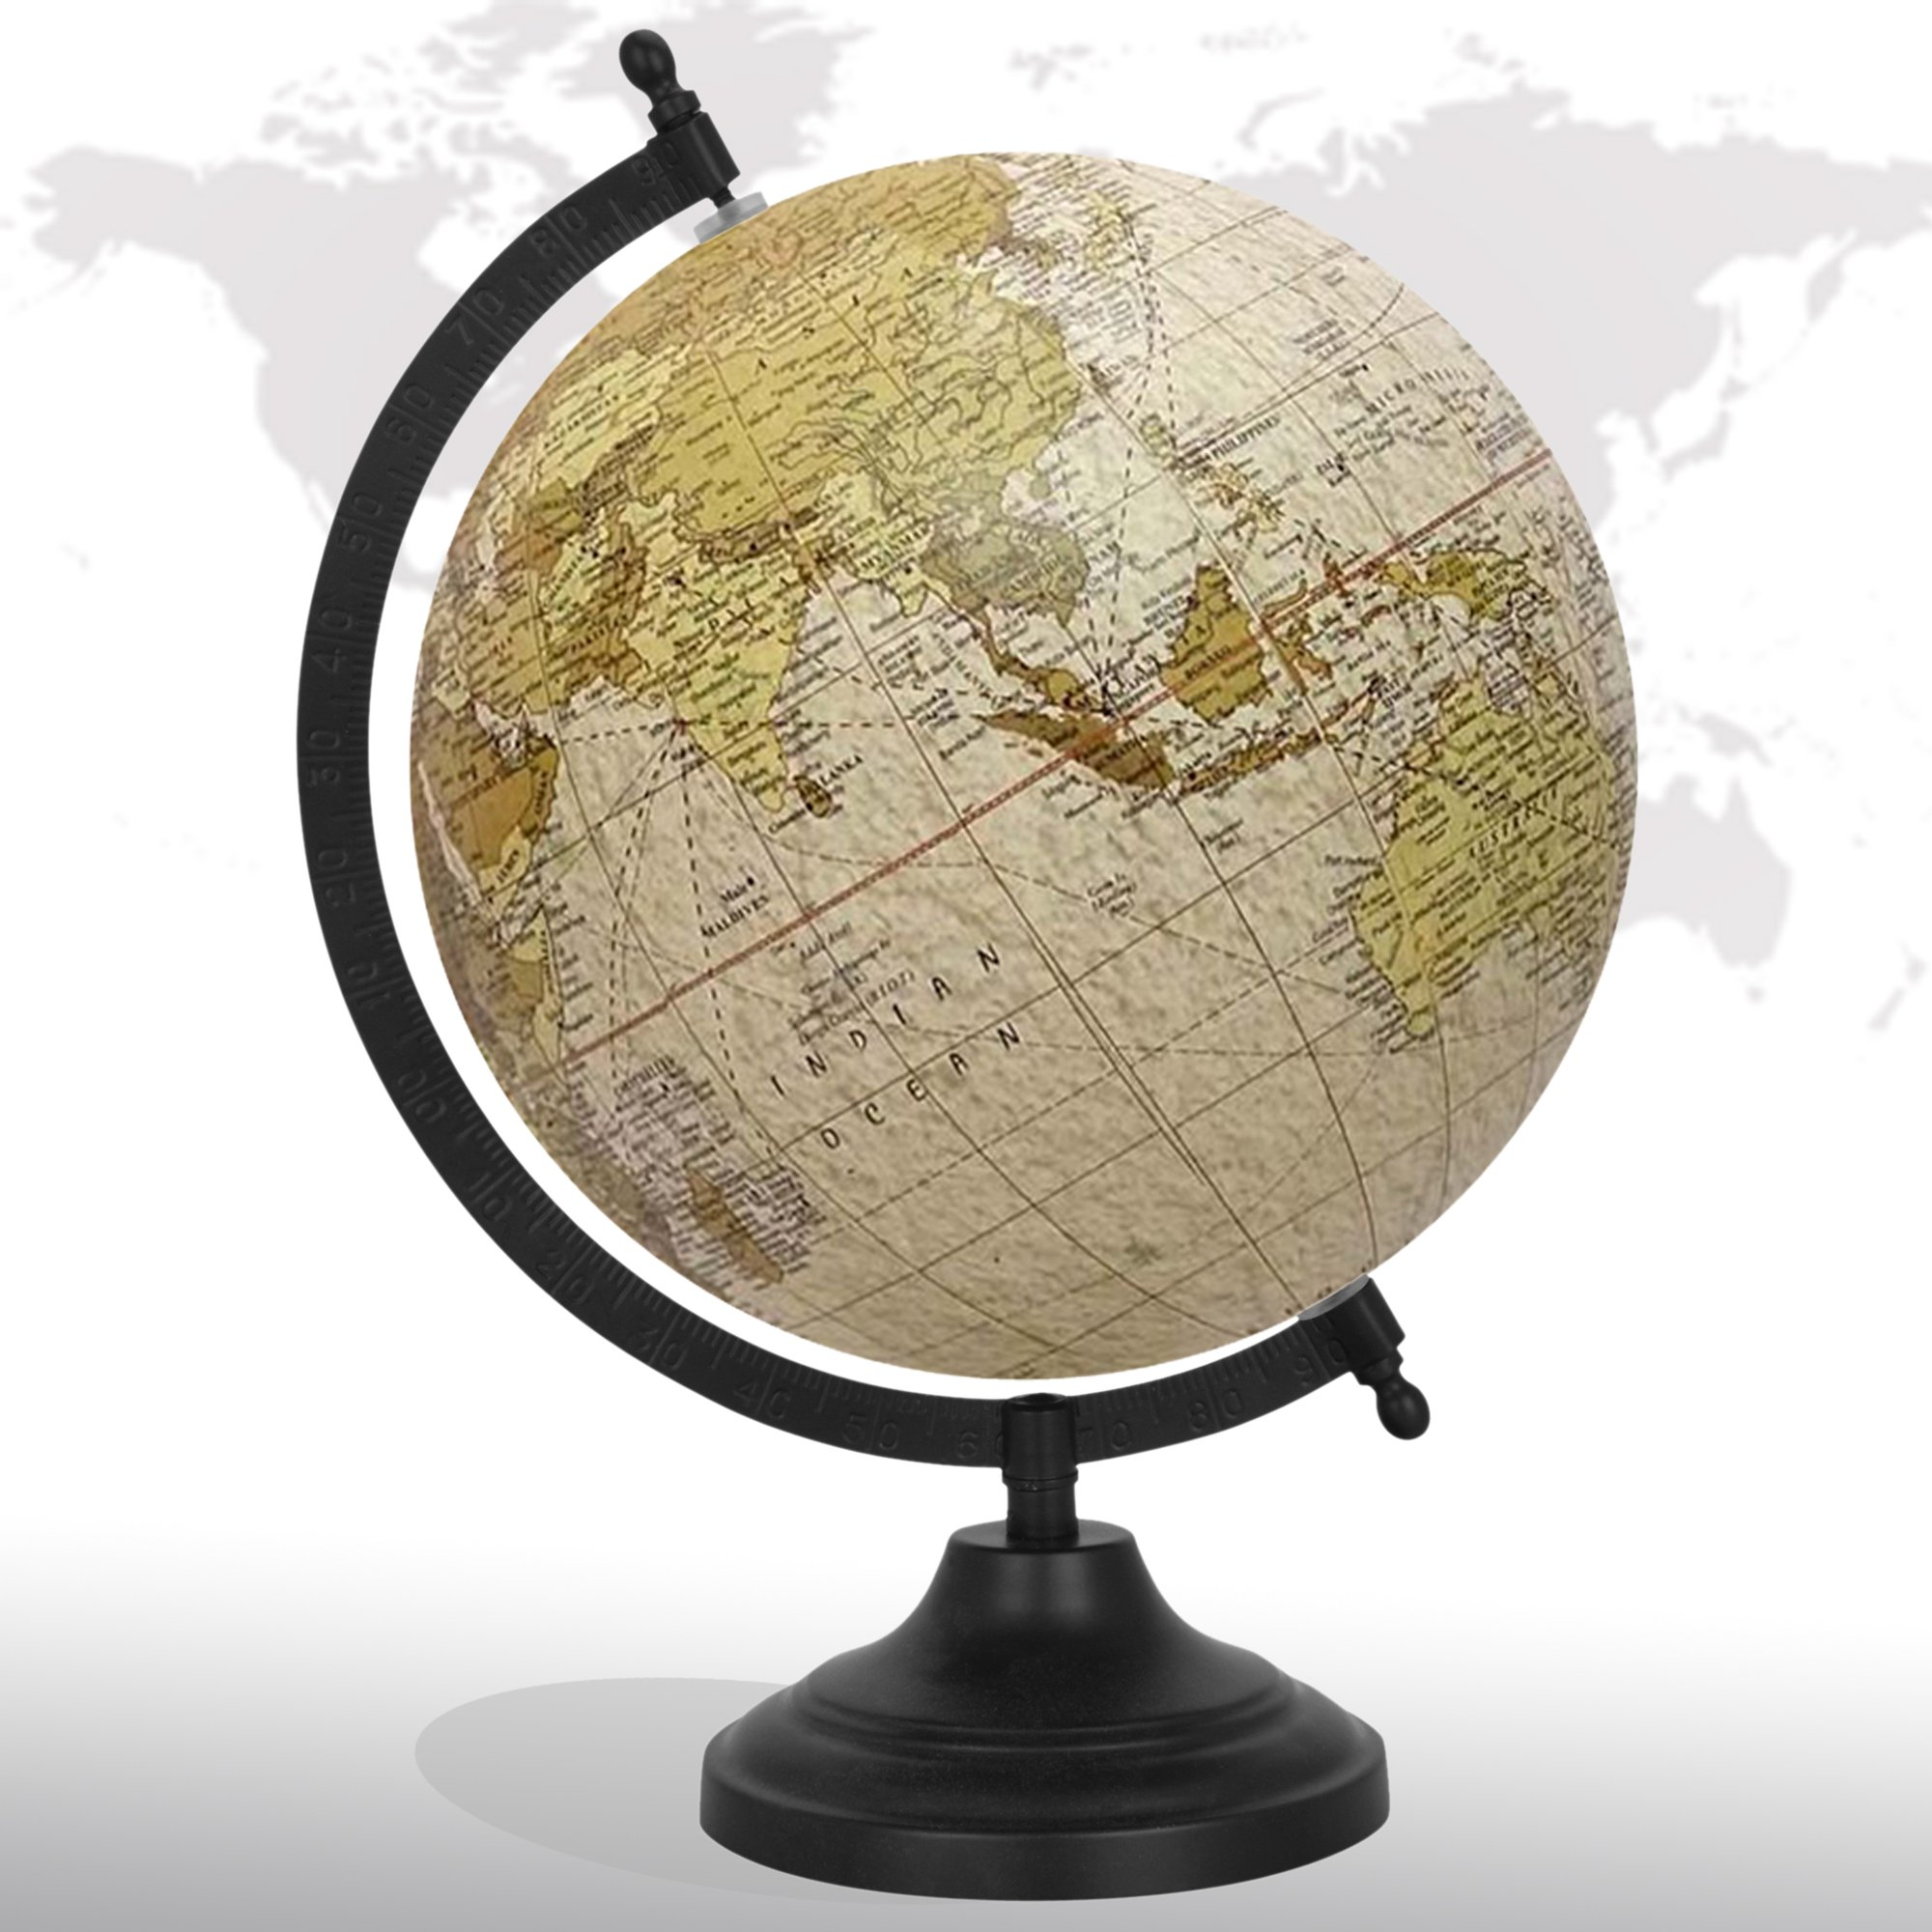 Decorative Rotating World Map Globe Off-White 8'' Inches Metal Base Educational Globe Office Table Décor